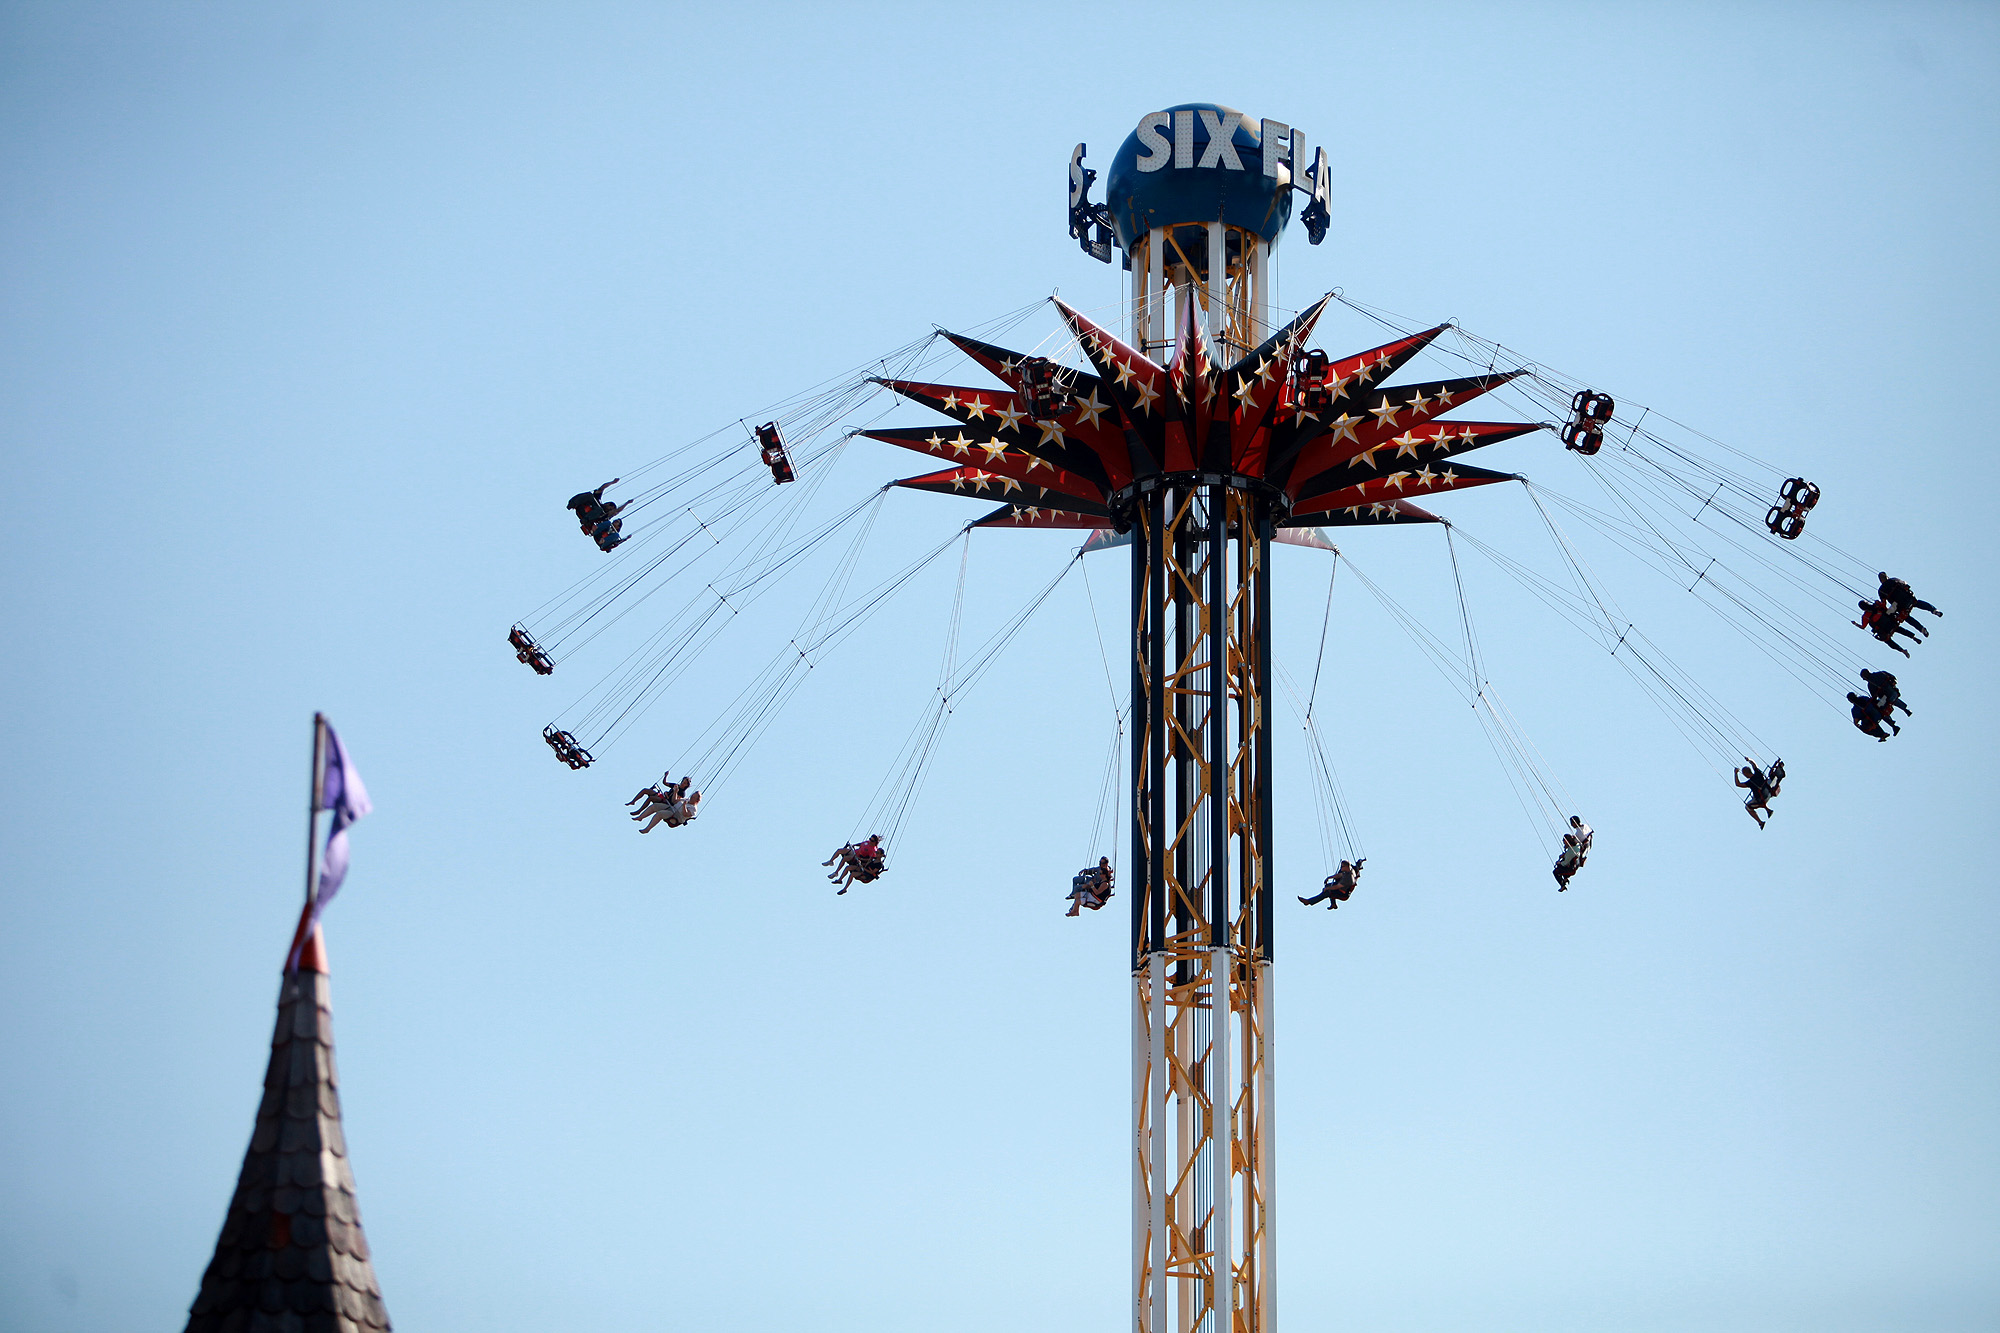 New Ride Screams Onto Park Scene San Antonio Express News